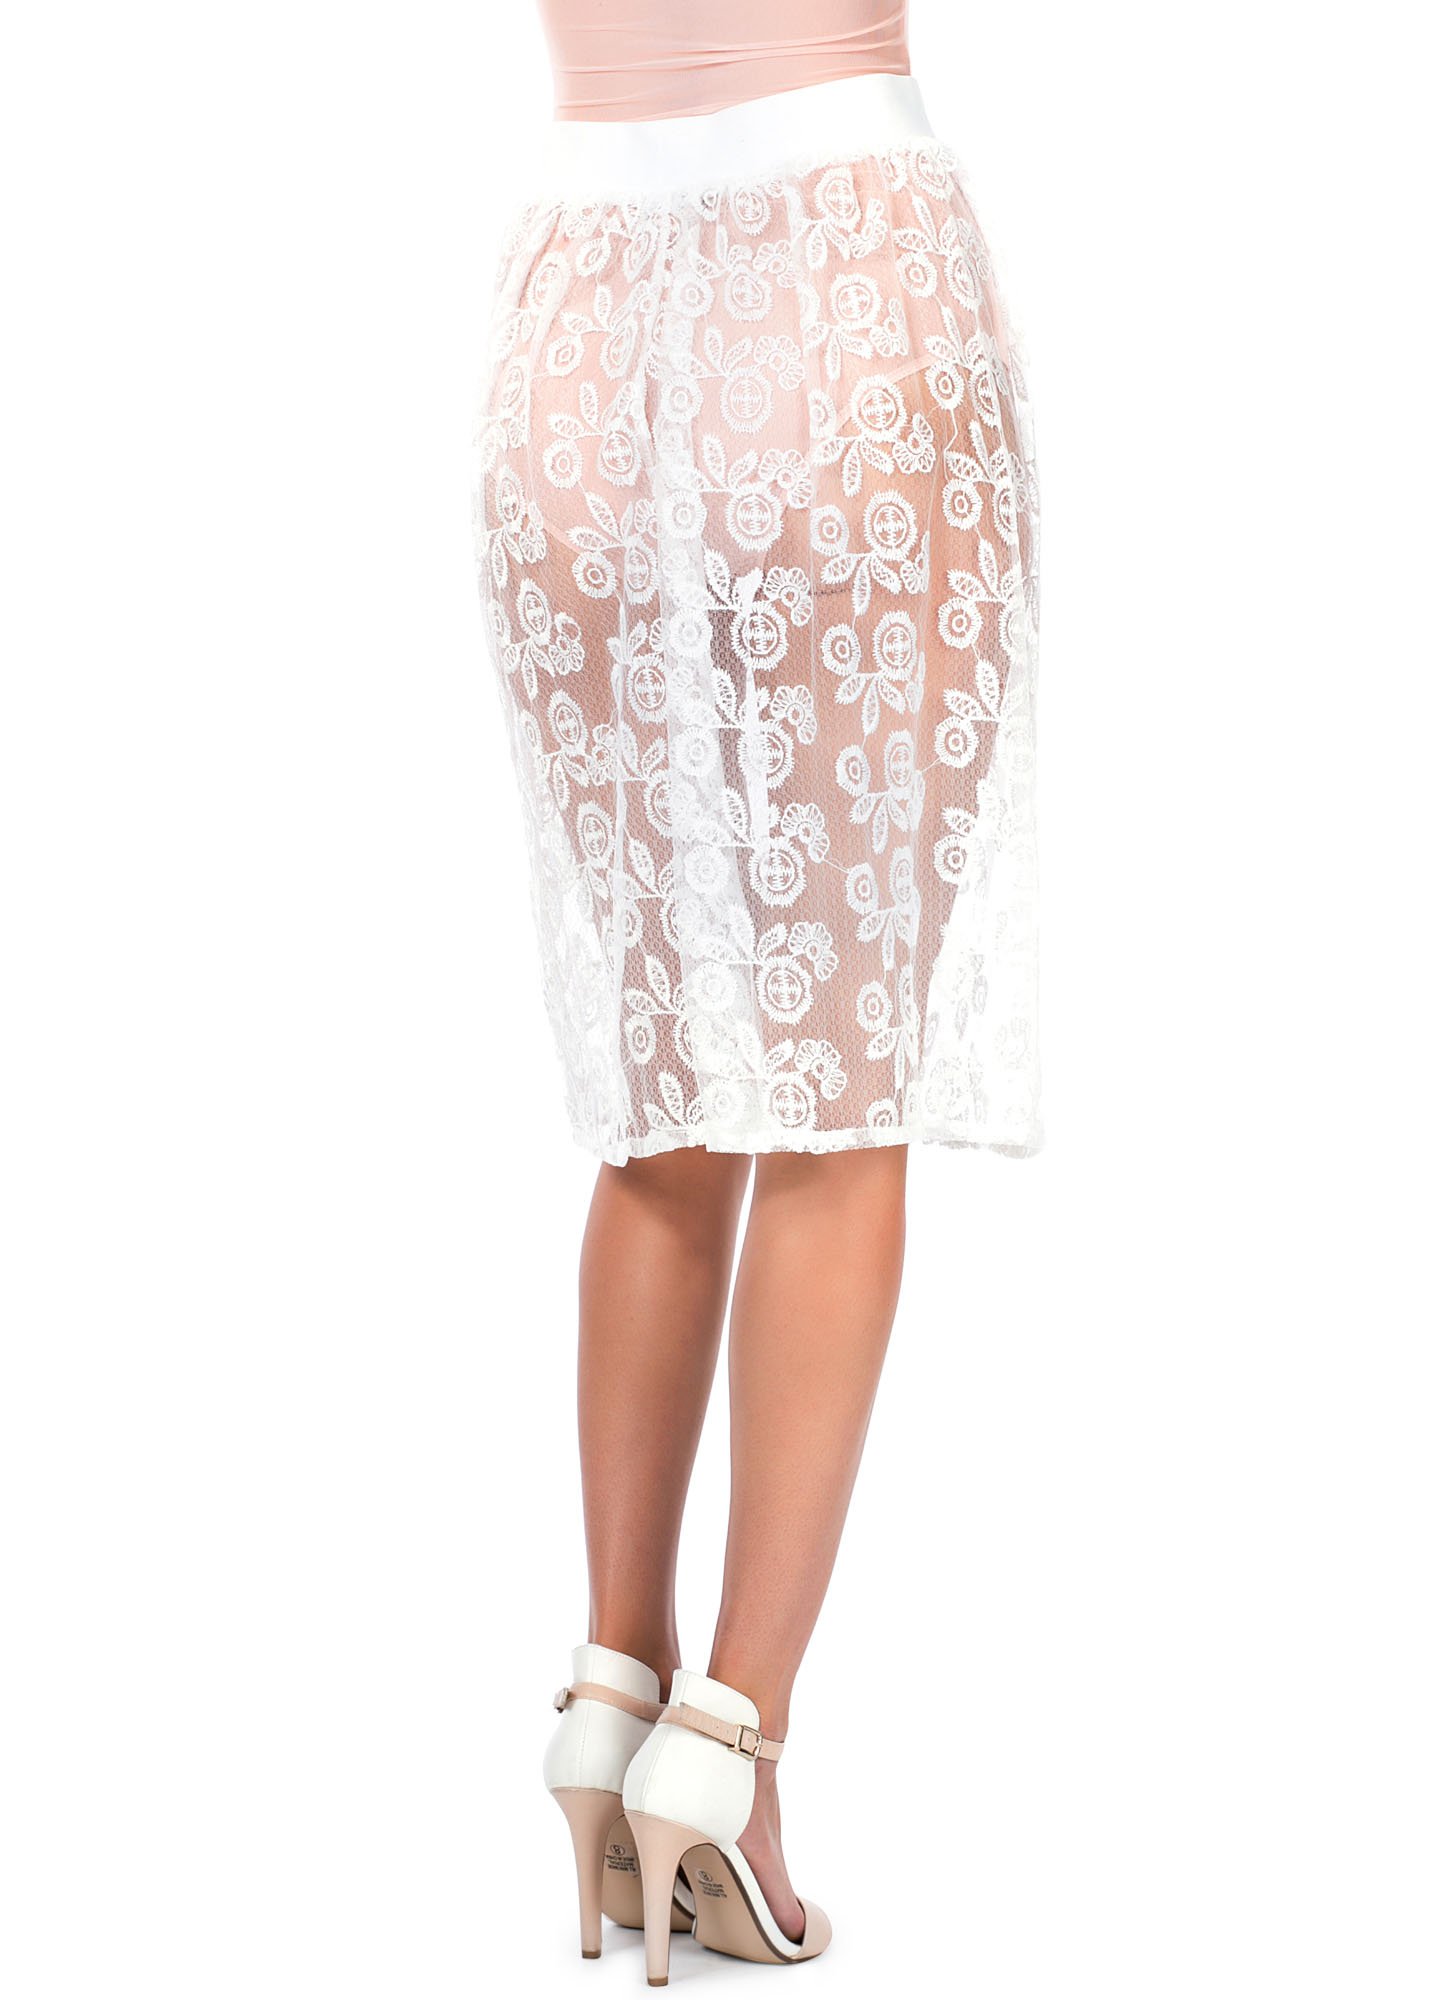 Sheer Floral Stitched Skirt WHITE